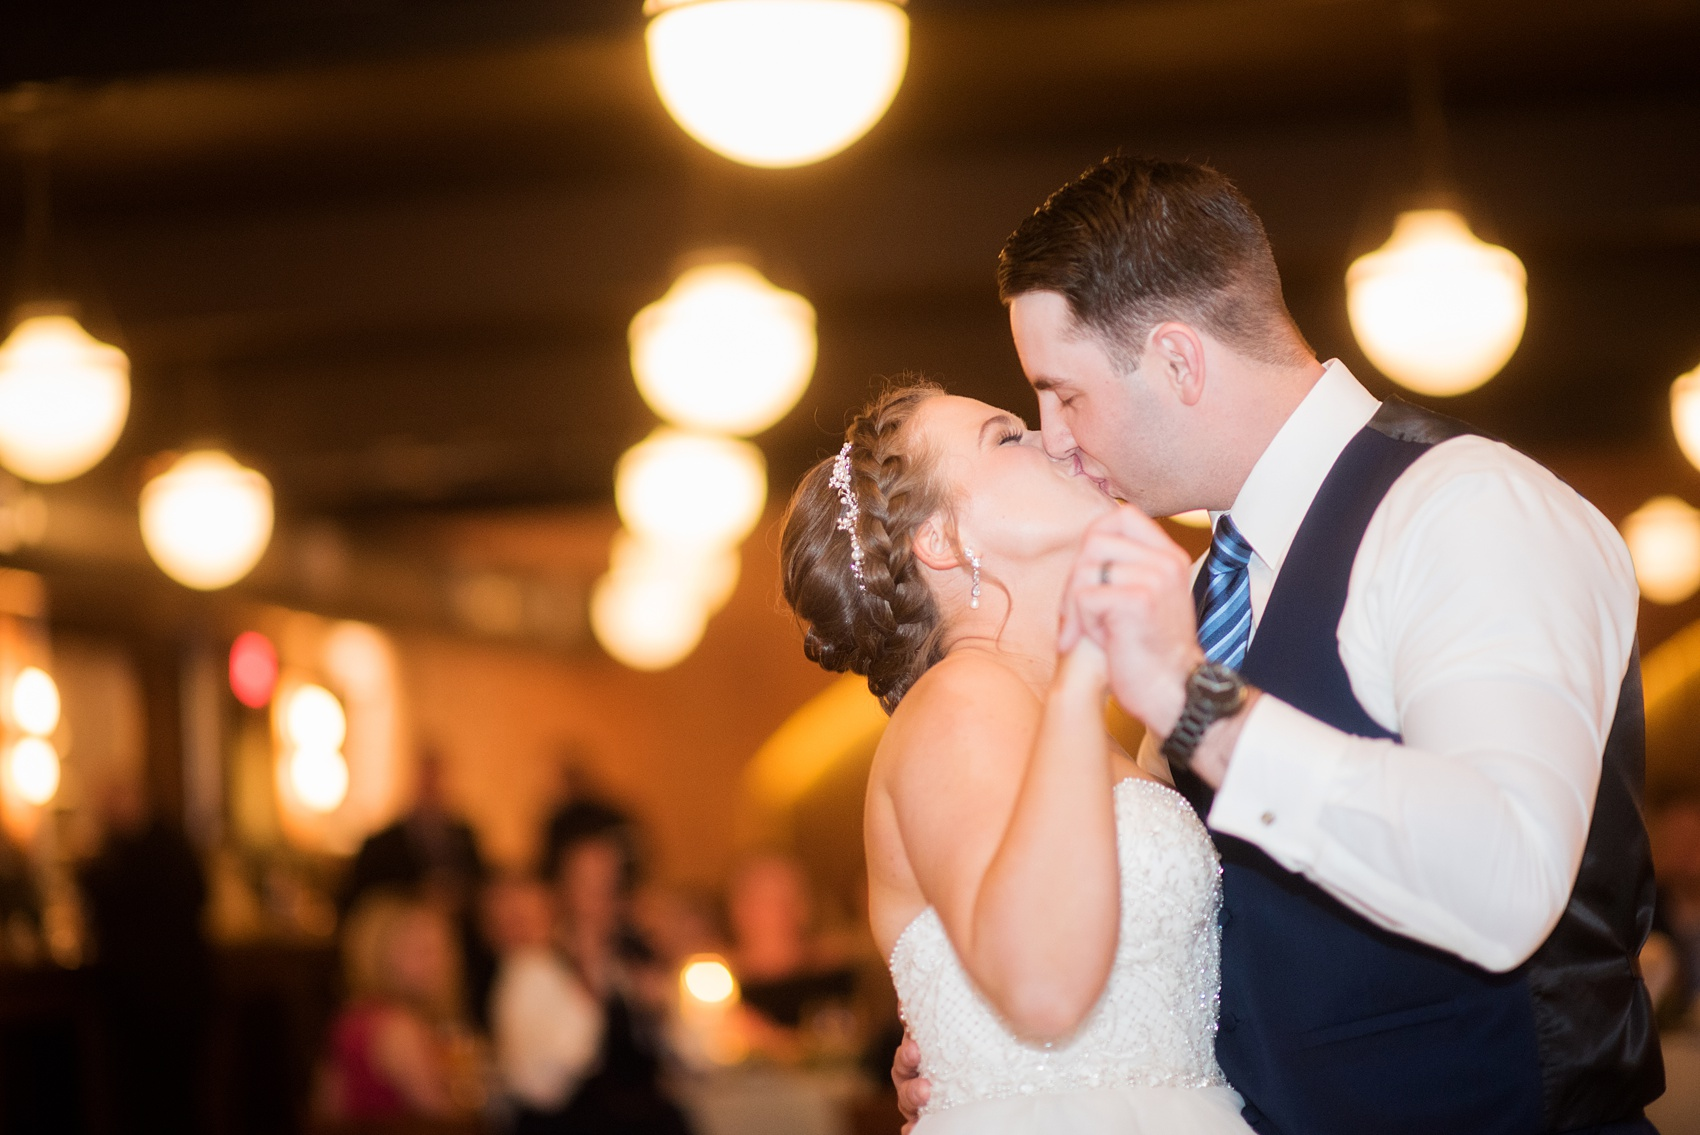 Durham wedding photos at The Cookery by Mikkel Paige Photography in North Carolina. The bride and groom kiss during their first dance.